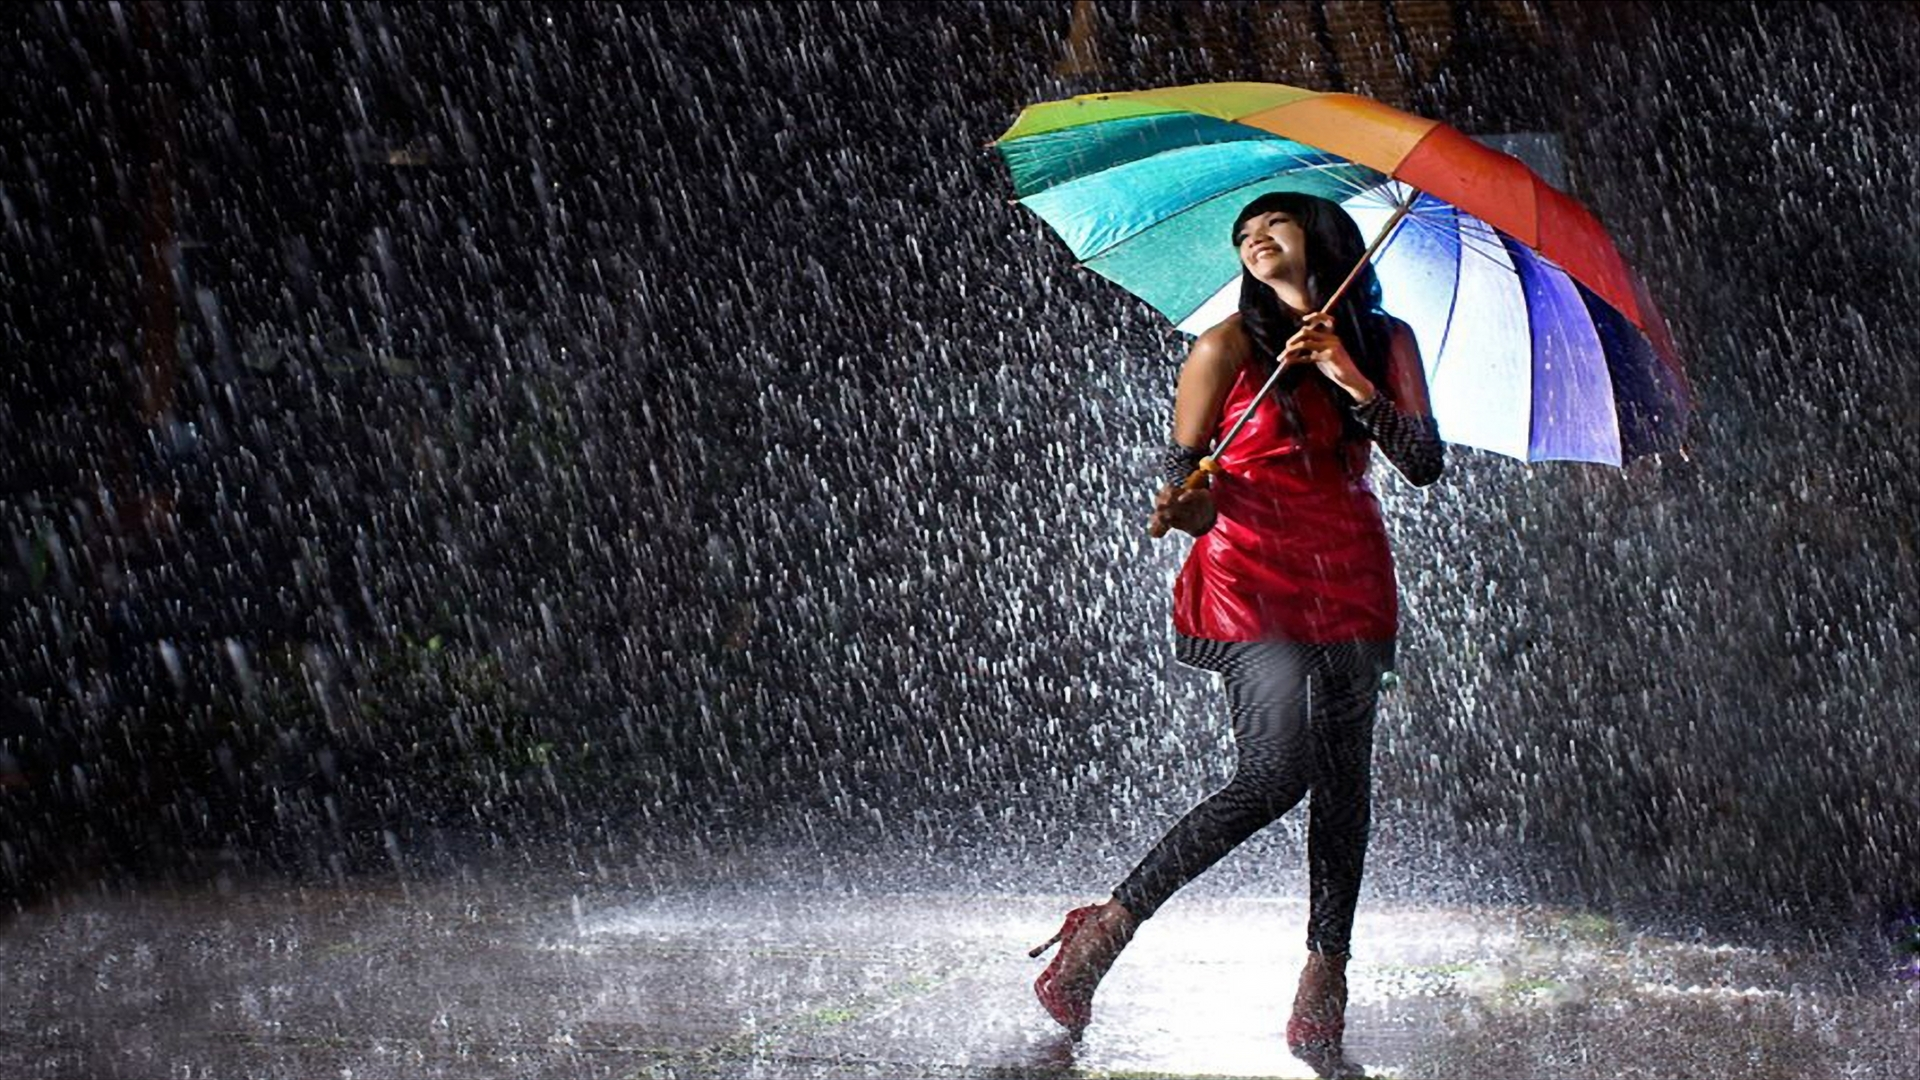 rain pixels search images wallpaper wallpapers beautiful rainy 1920x1080